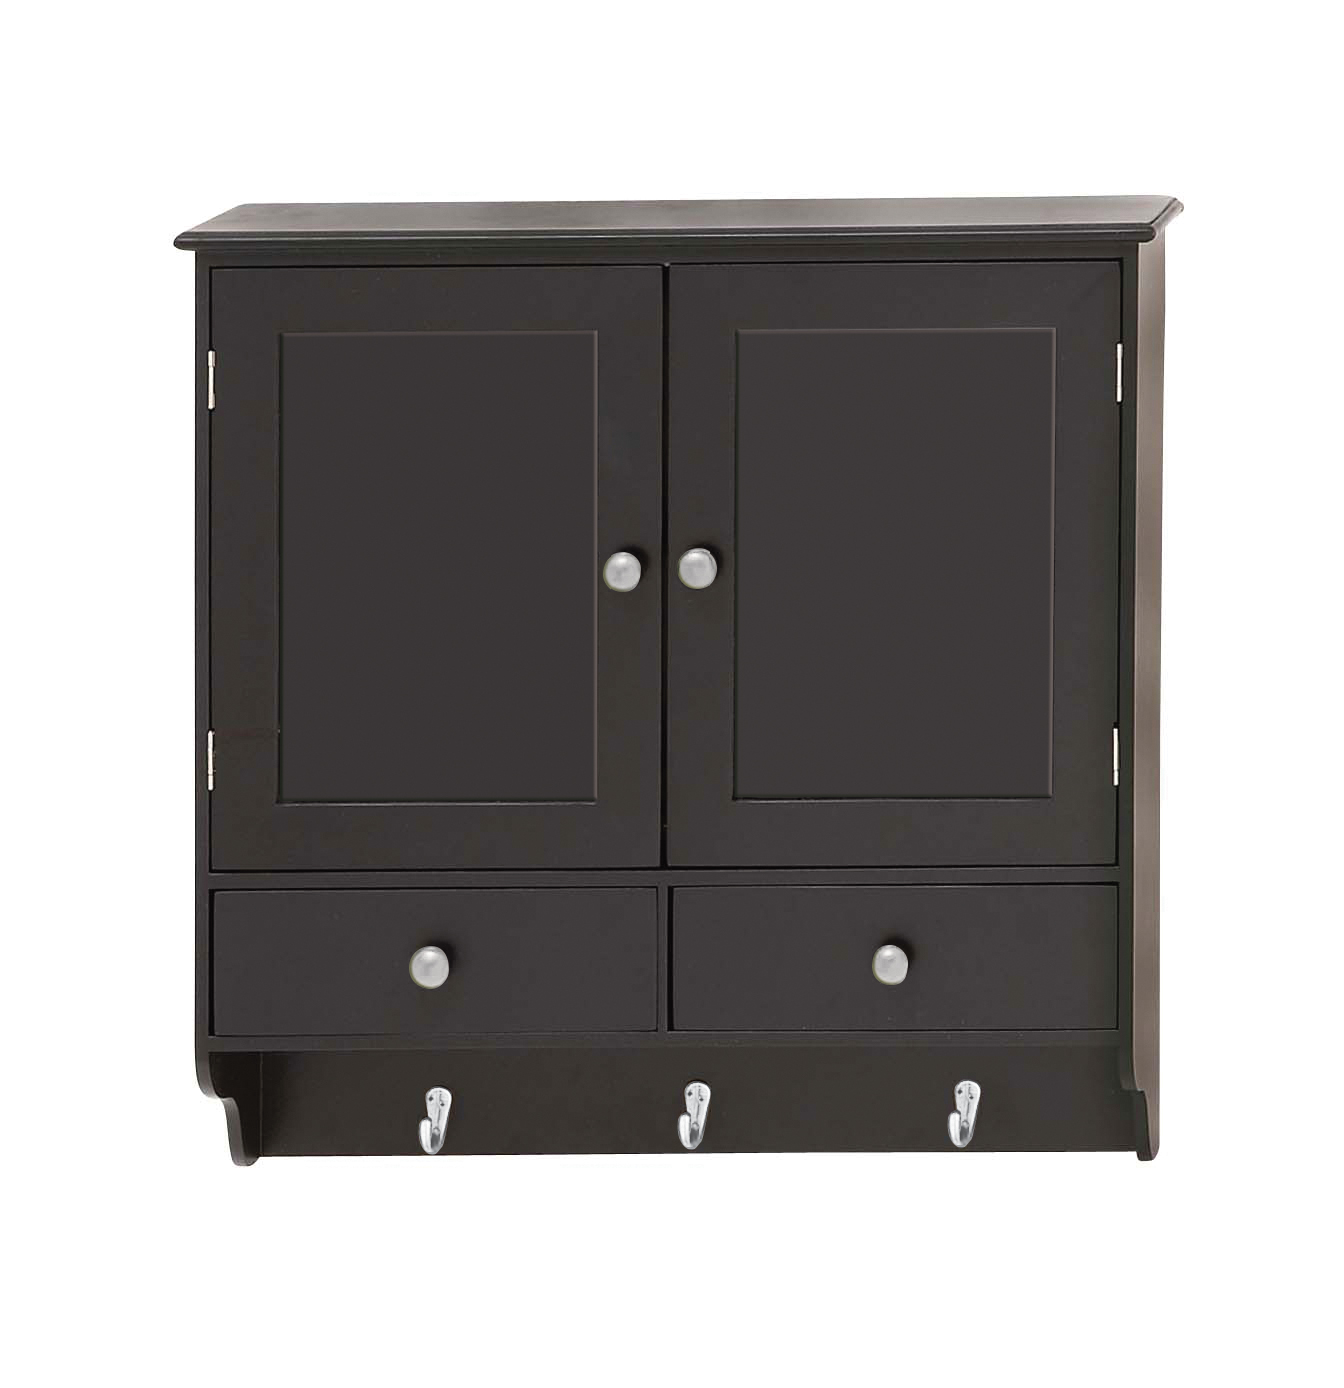 Charmant Decmode Contemporary 24 X 24 Inch Wooden Wall Cabinet With Hooks, Black    Walmart.com